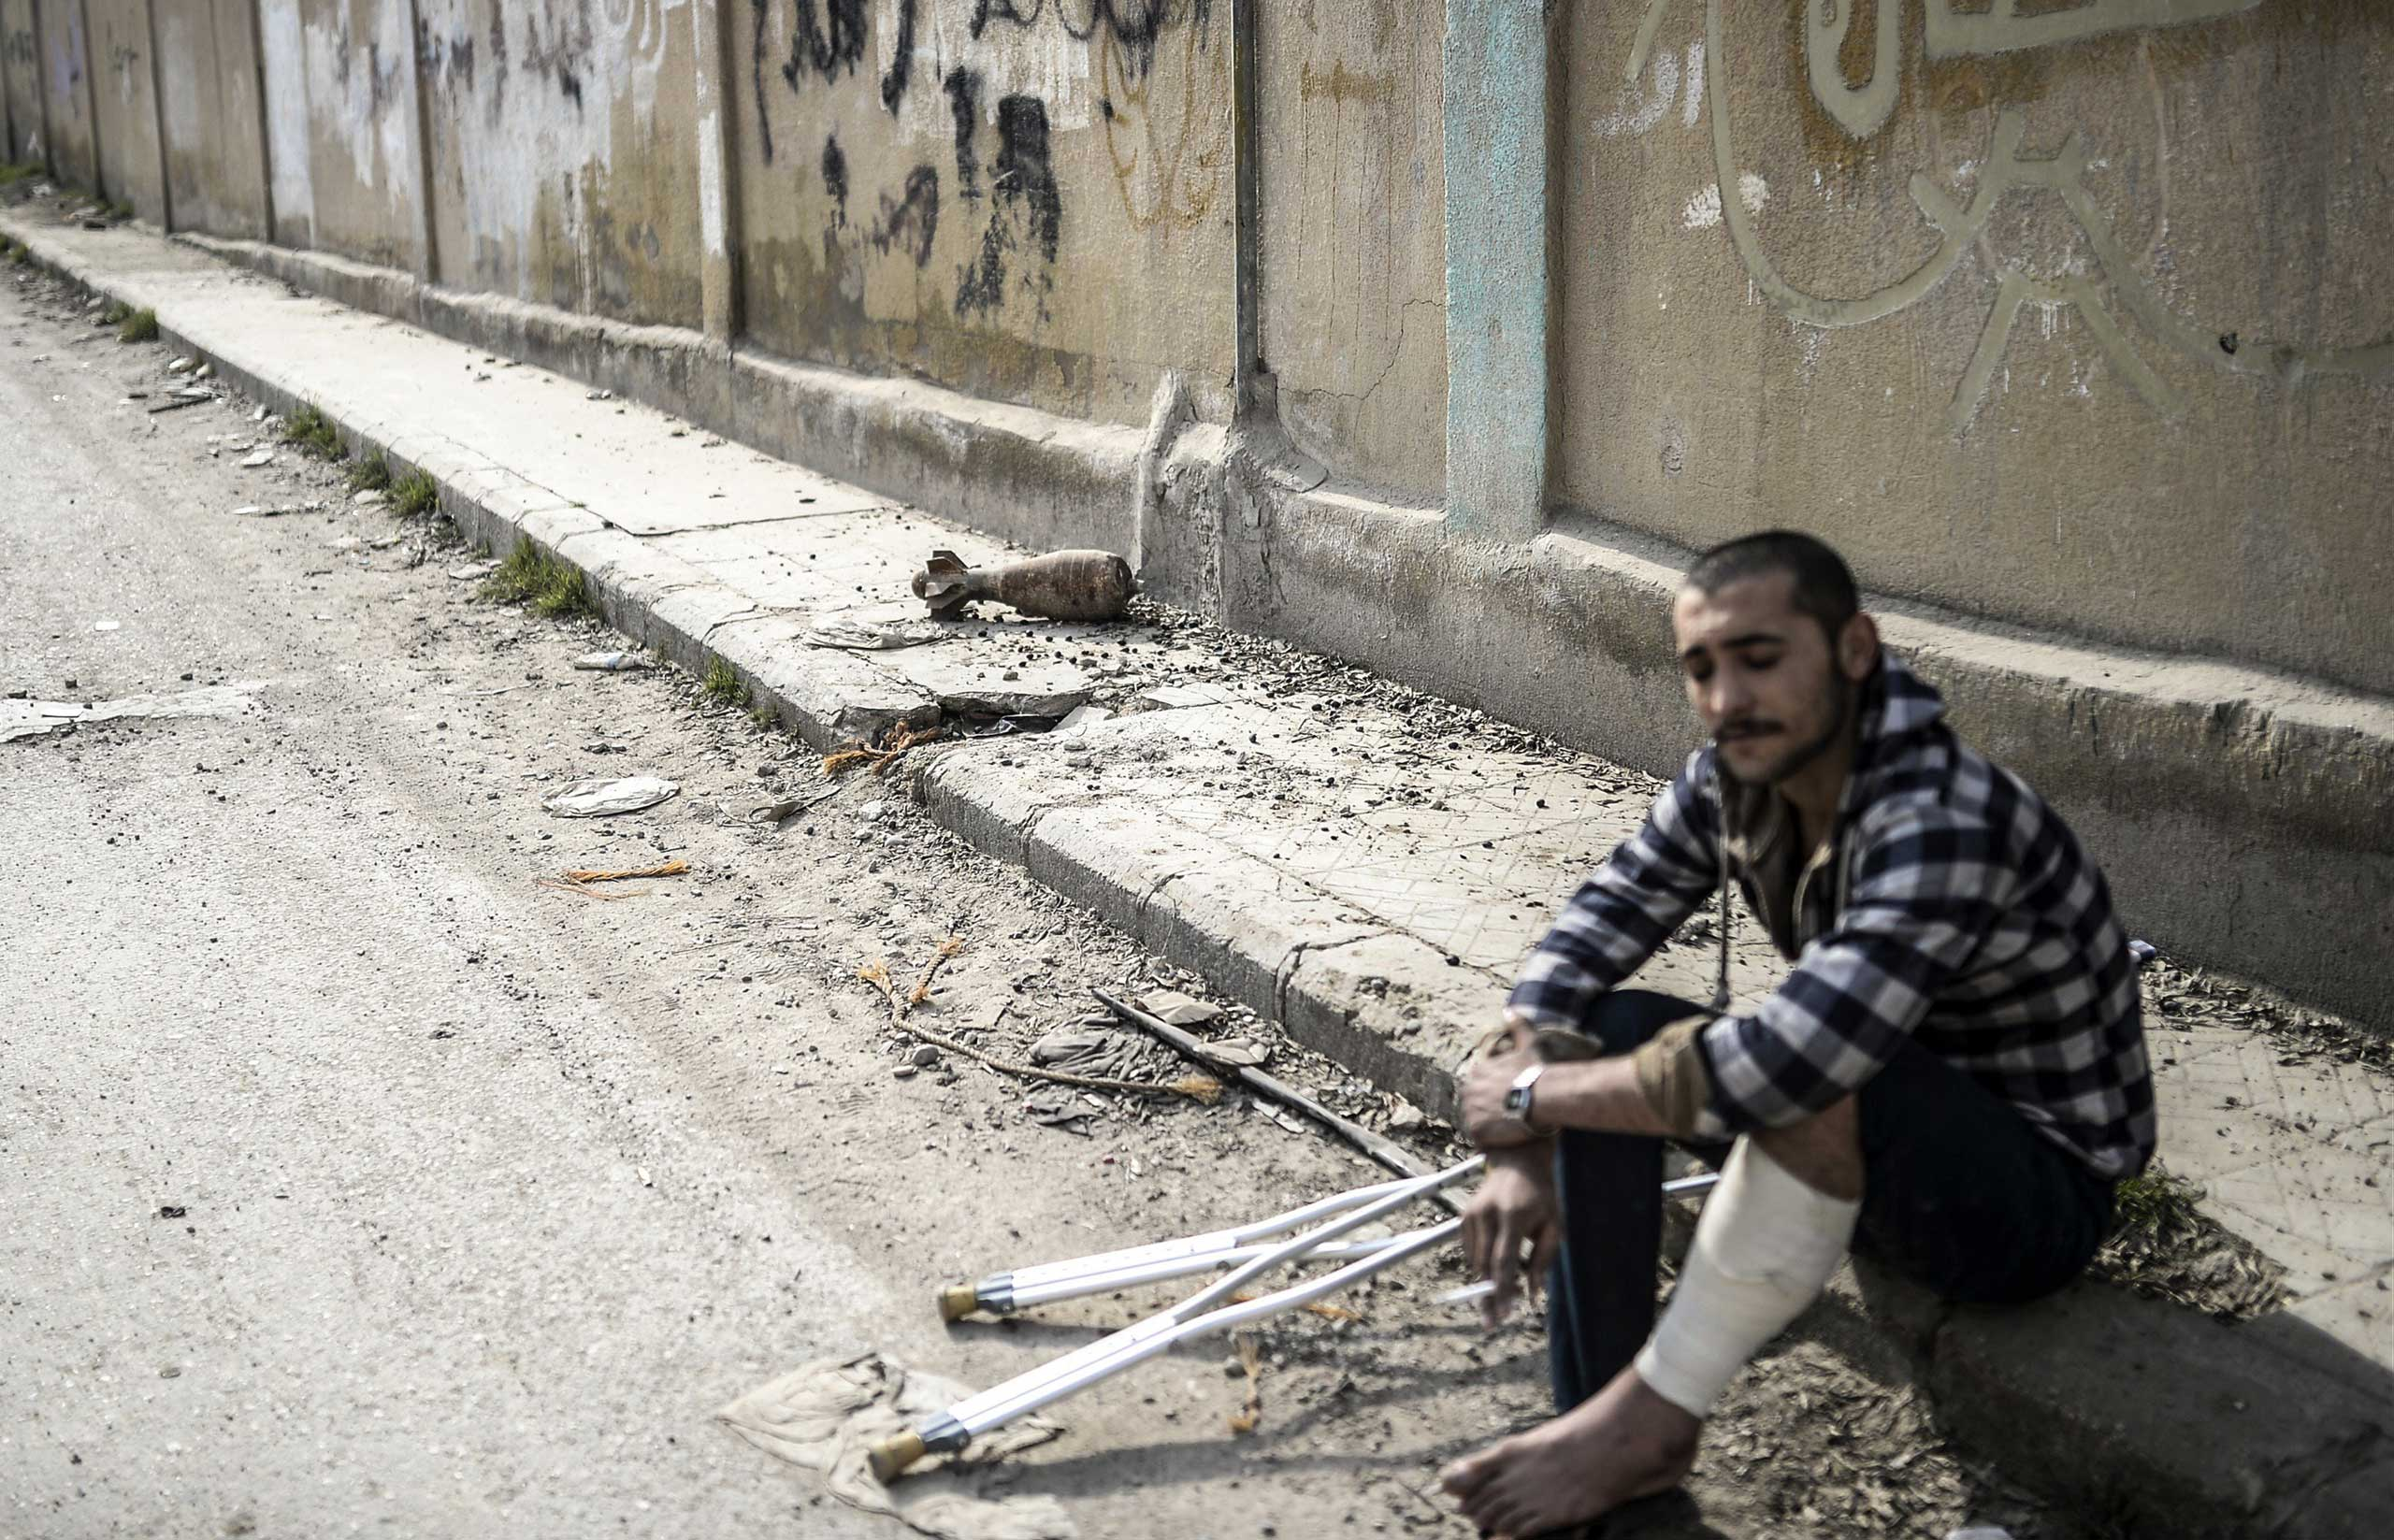 An injured Kurdish fighter sits near the site where a projectile landed in the center of the Syrian town of Kobani on Jan. 28, 2015.